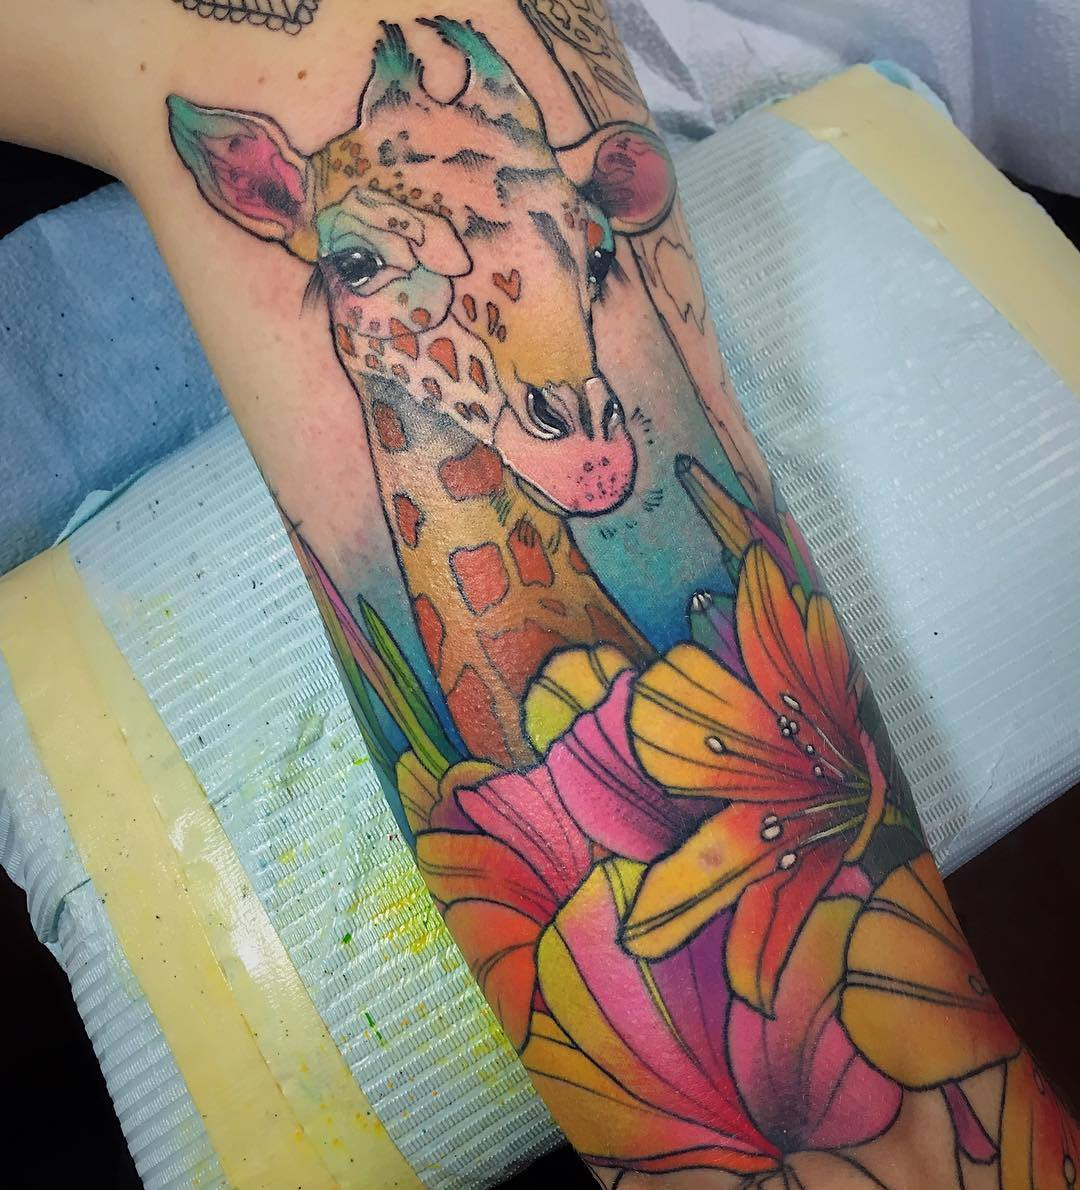 A baby giraffe peeks out over a bed of lily flowers in this colorful a baby giraffe peeks out over a bed of lily flowers in this colorful watercolor tattoo by katie shocrylas izmirmasajfo